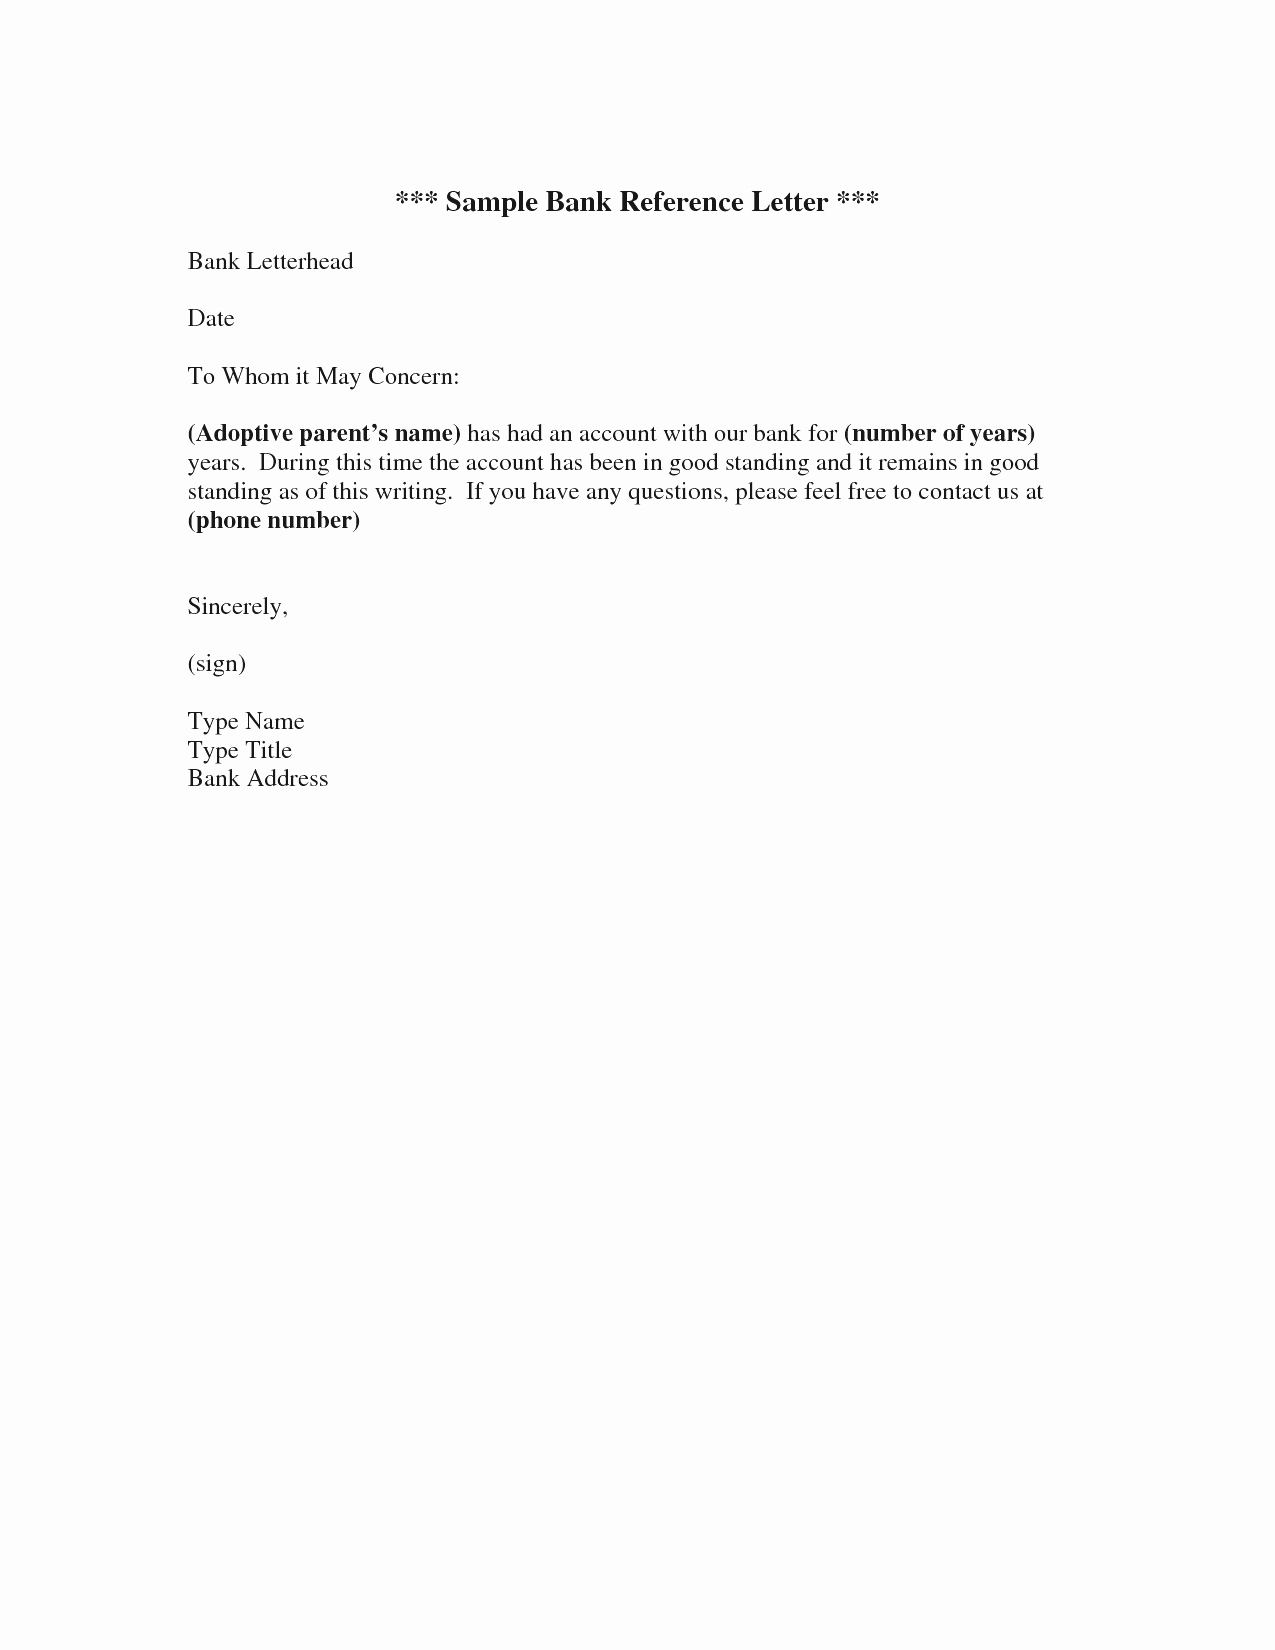 Recommendation Letter Sample From Employer Inspirational Business Reference Letter Template Example Mughals